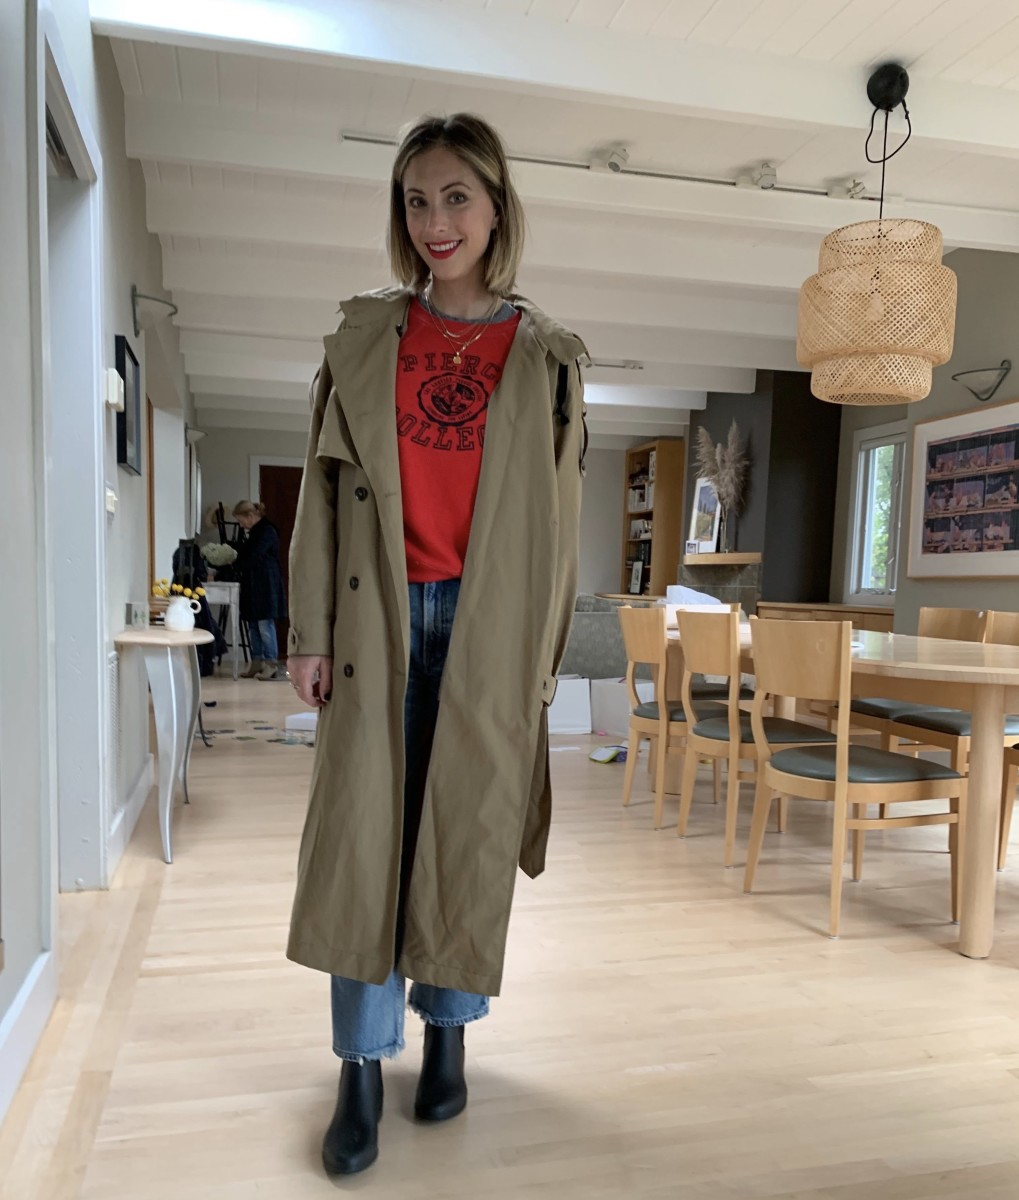 Friday: Zara Trench (similar here), Vintage Sweatshirt, Citizens of Humanity Jeans, Sam Edelman Rain Boots, Laura Mercier Clique Lipstick